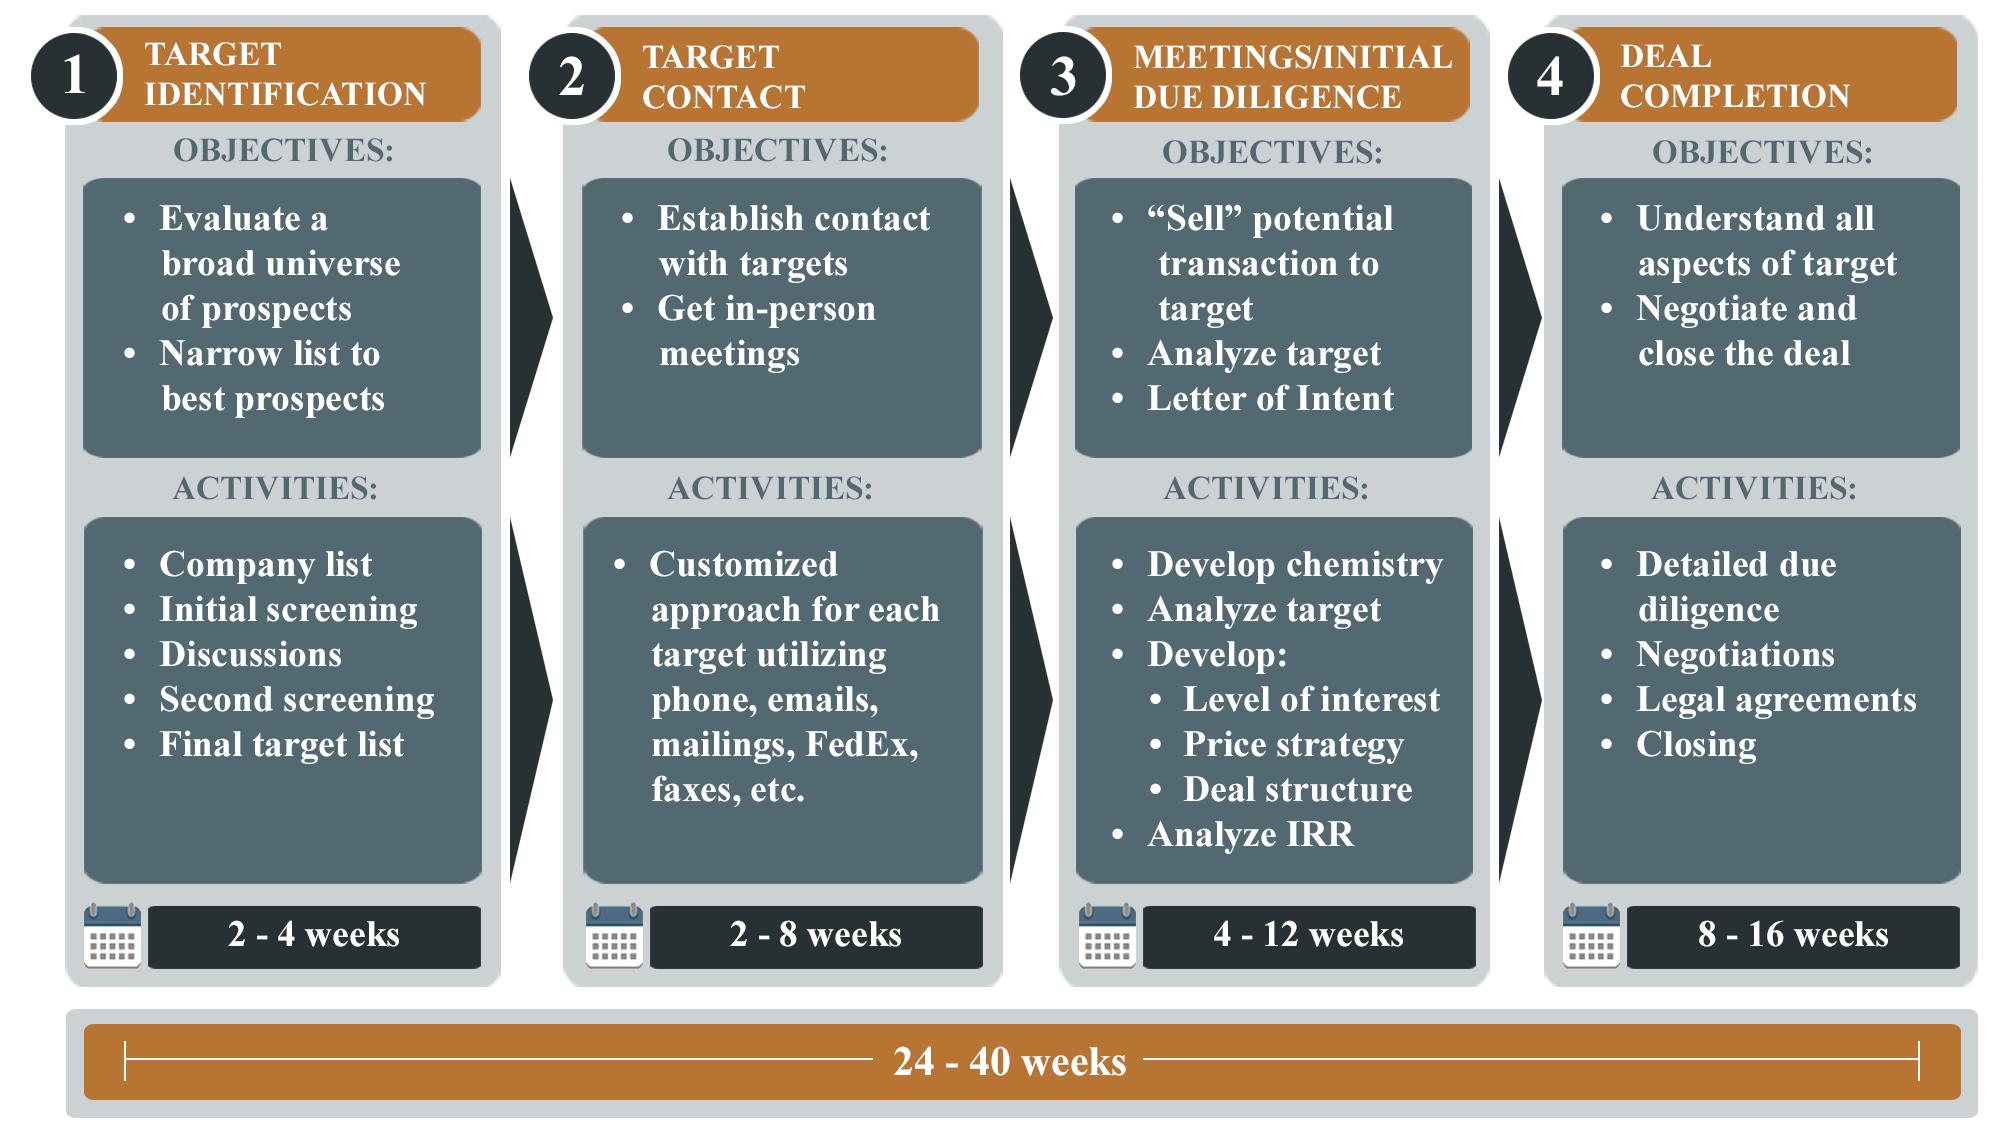 TKO - buy-side engagement process 2.png